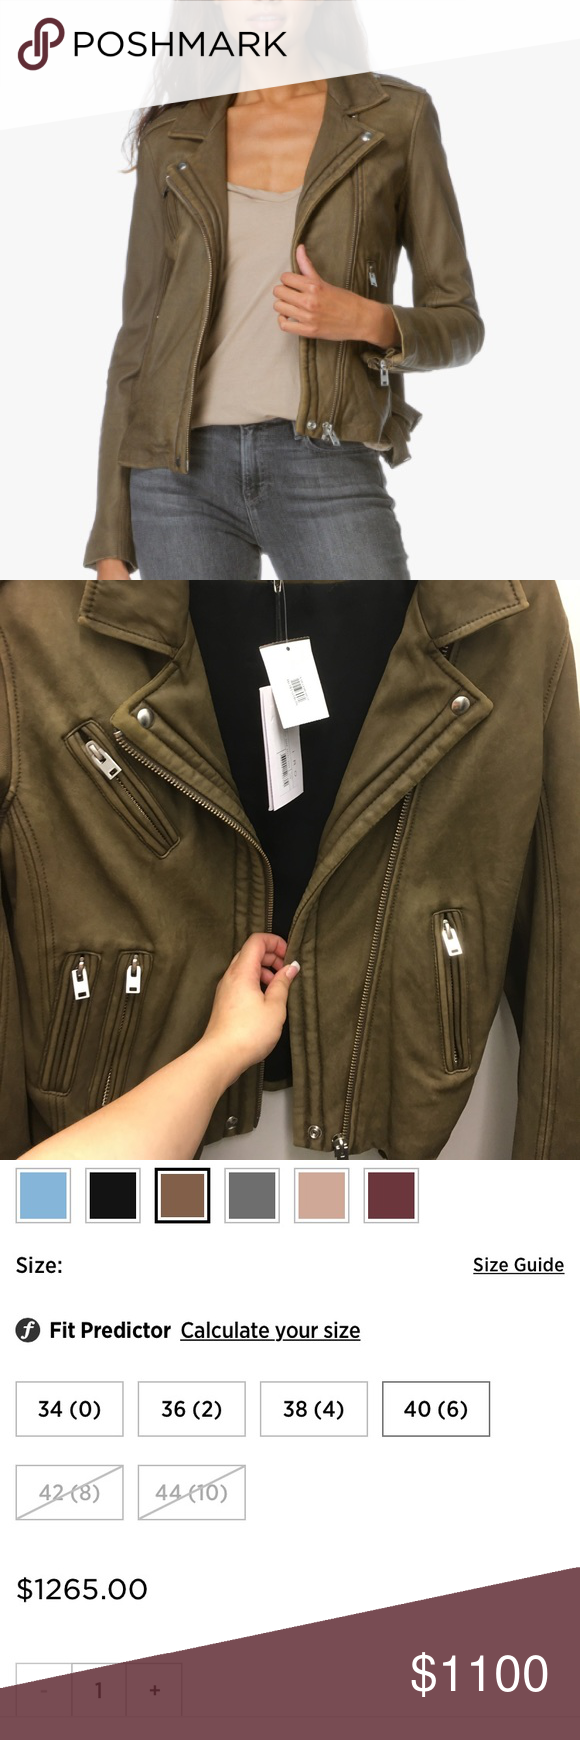 Iro Han Leather Jacket Perfect Nwt Nwt Leather Jacket Jackets Clothes Design [ 1740 x 580 Pixel ]